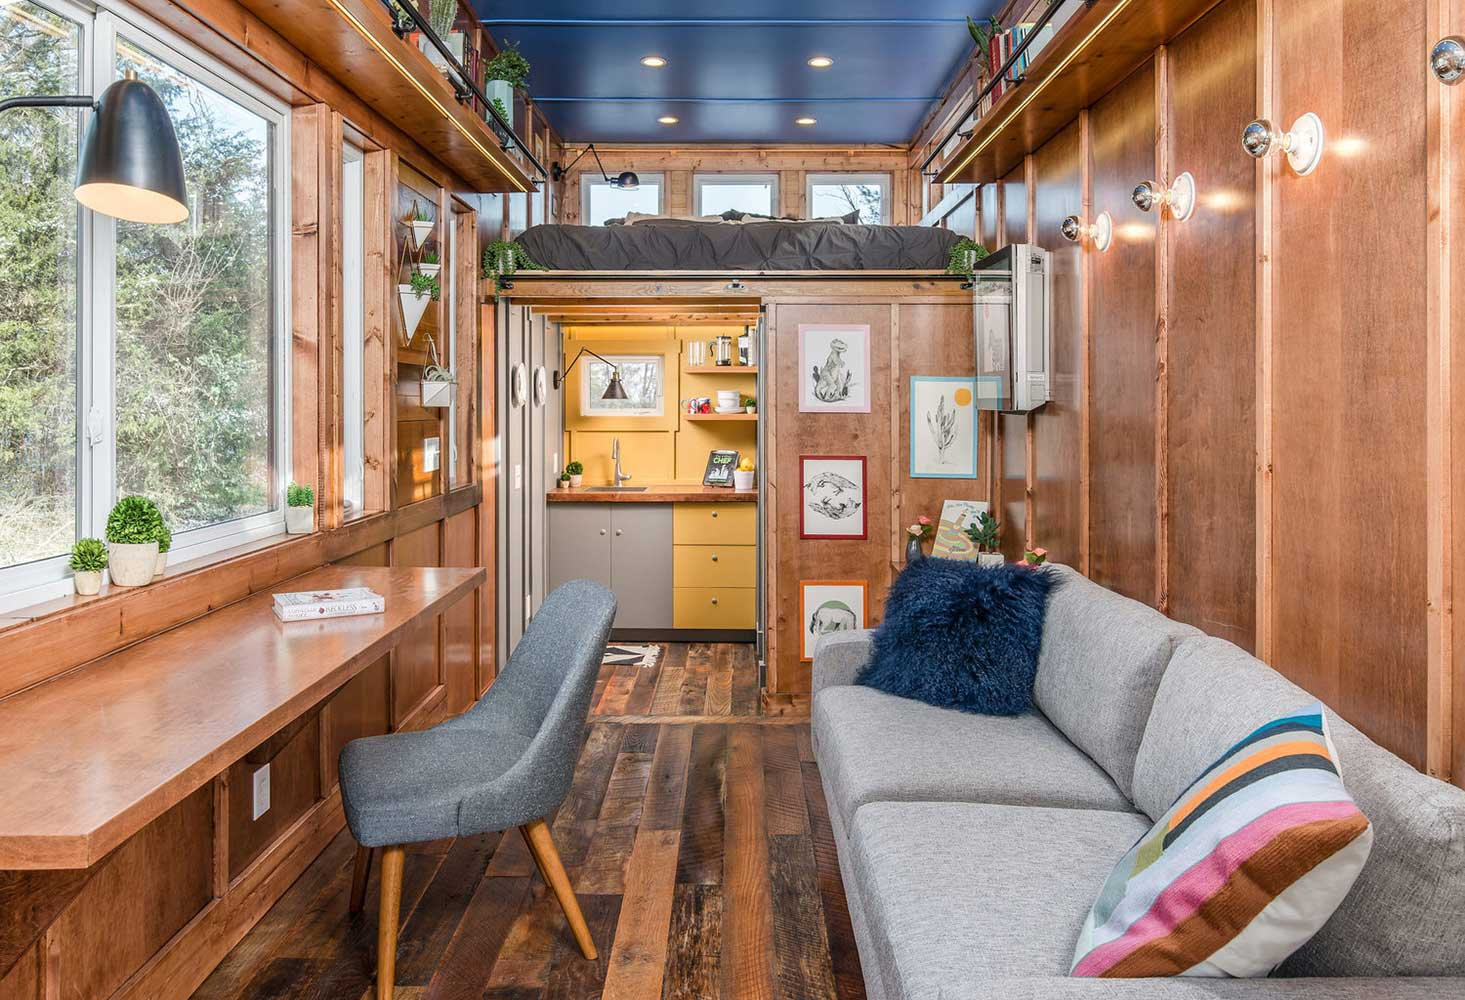 The Cornelia cabin from New Frontier Tiny Homes